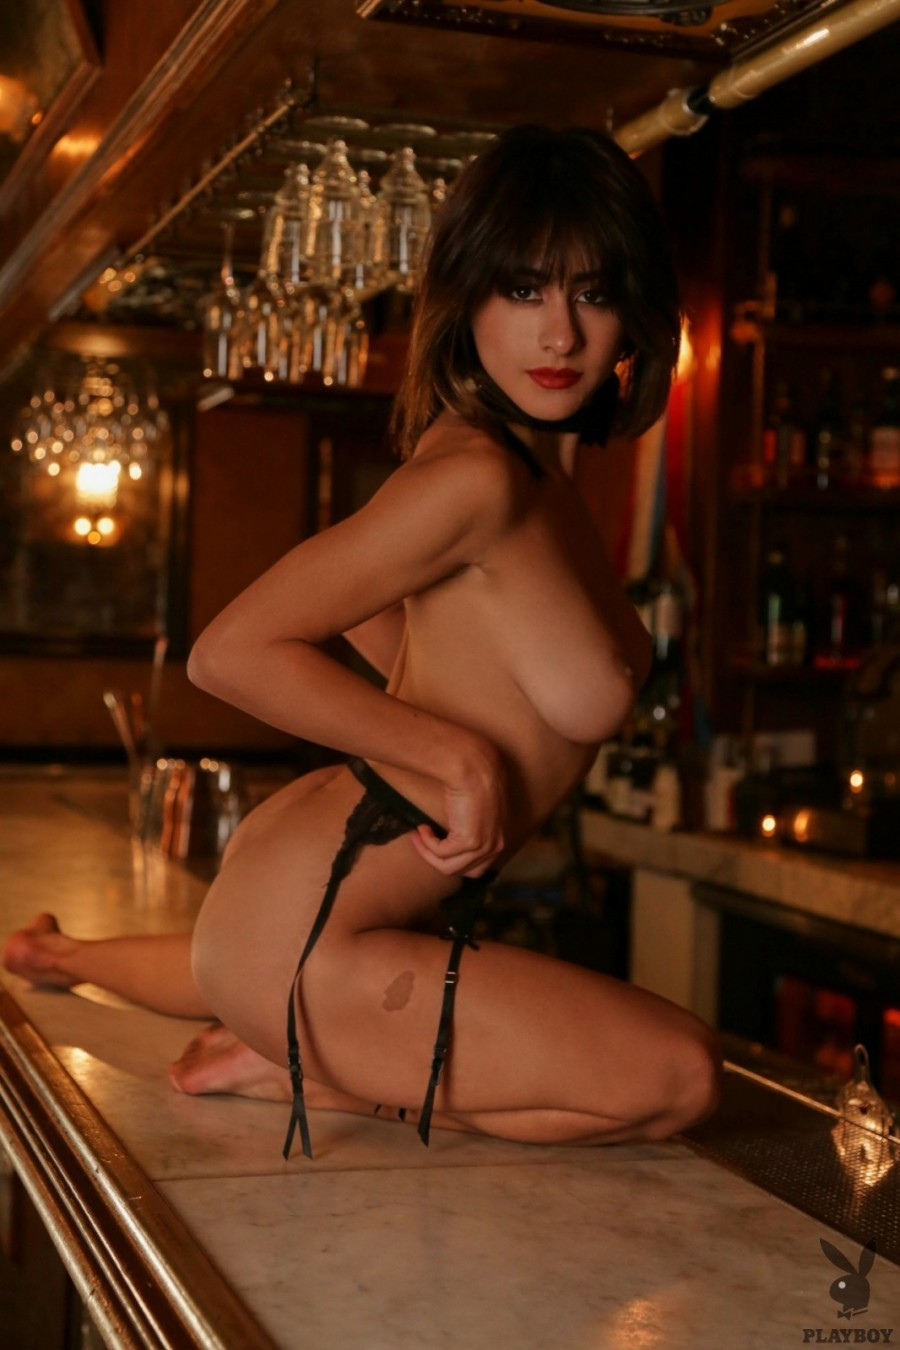 Sexy babe lies down on the bar counter